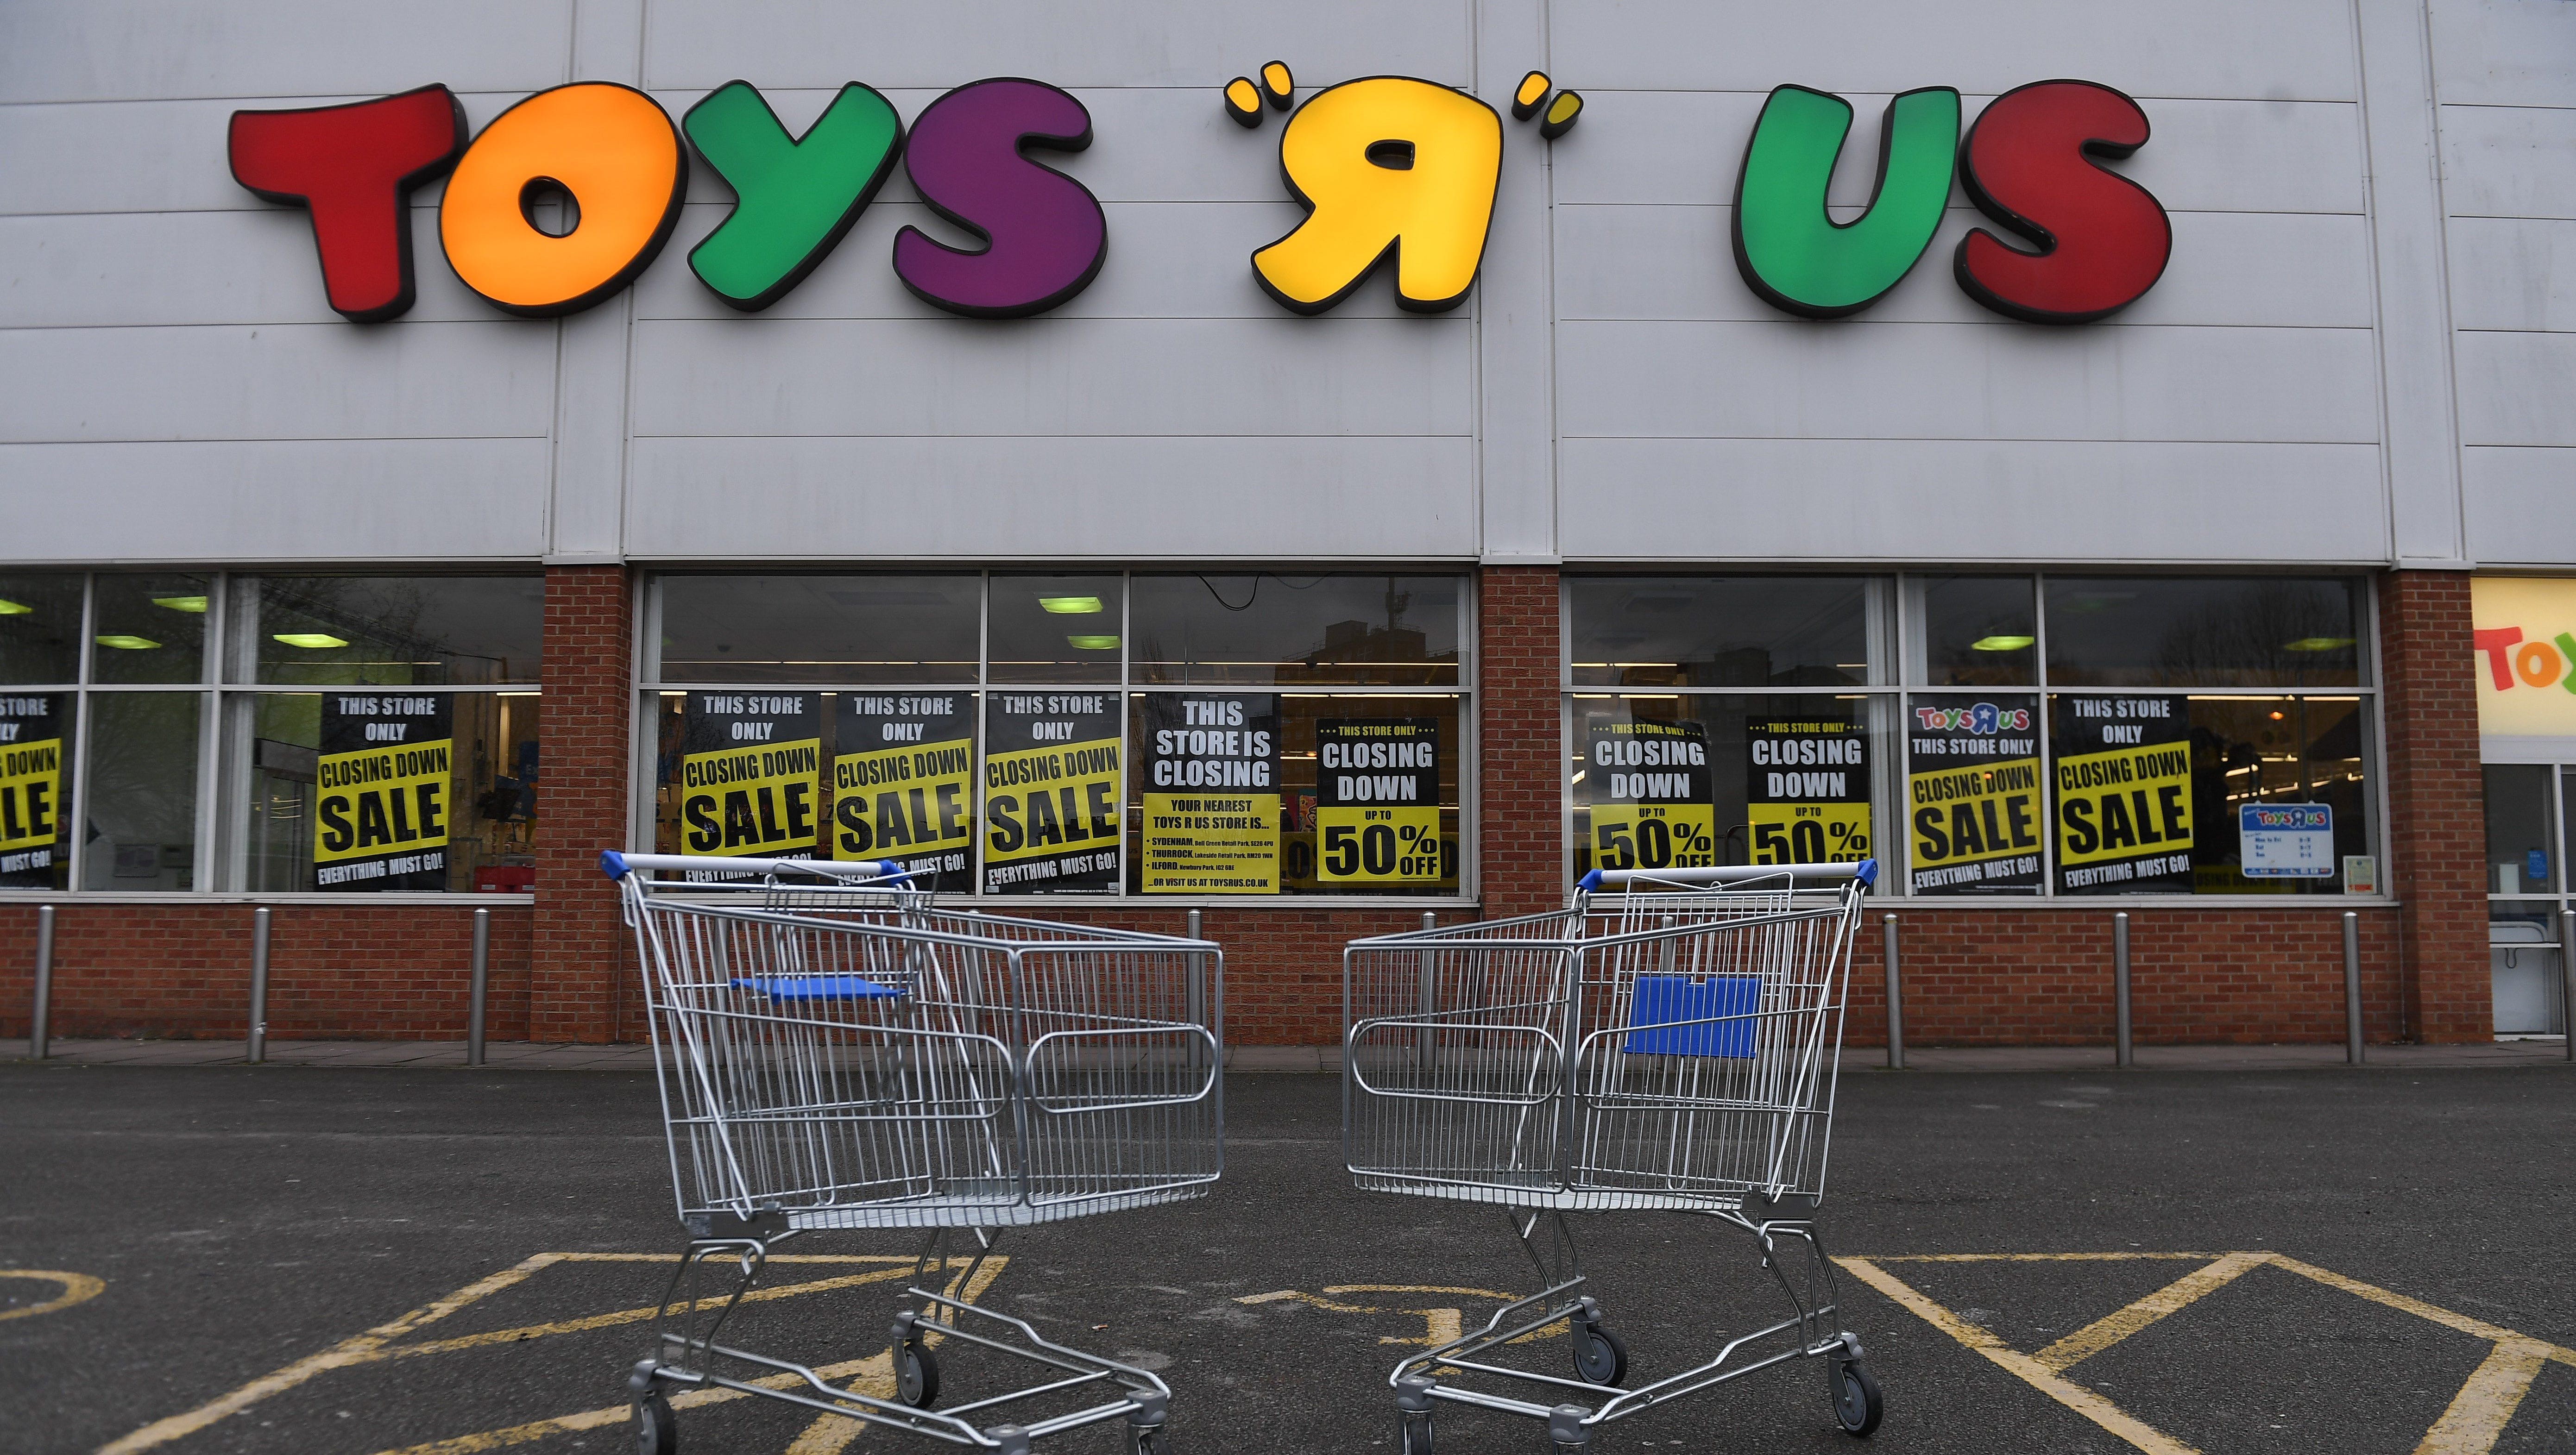 Toys r us stock ticker symbol images symbol and sign ideas toys r us liquidation us news in photos claudias images 5561 x 3142 pxtoys r us buycottarizona Images